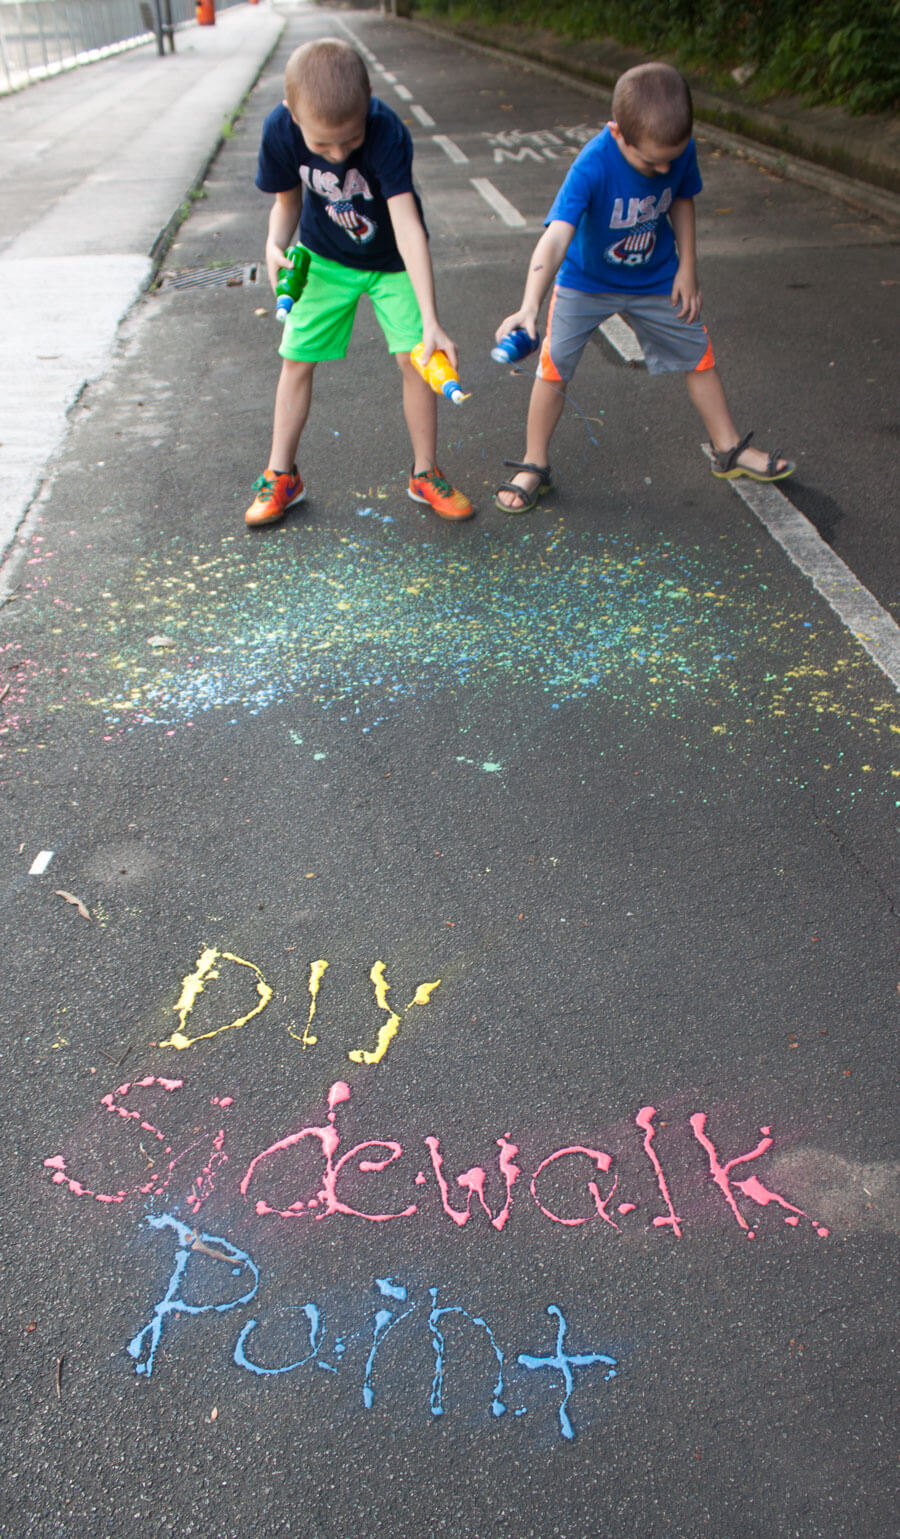 DIY-Sidwalk-Paint-Shooters-outside-kids-fun-for-summer-from-Nap-Time-Creations-